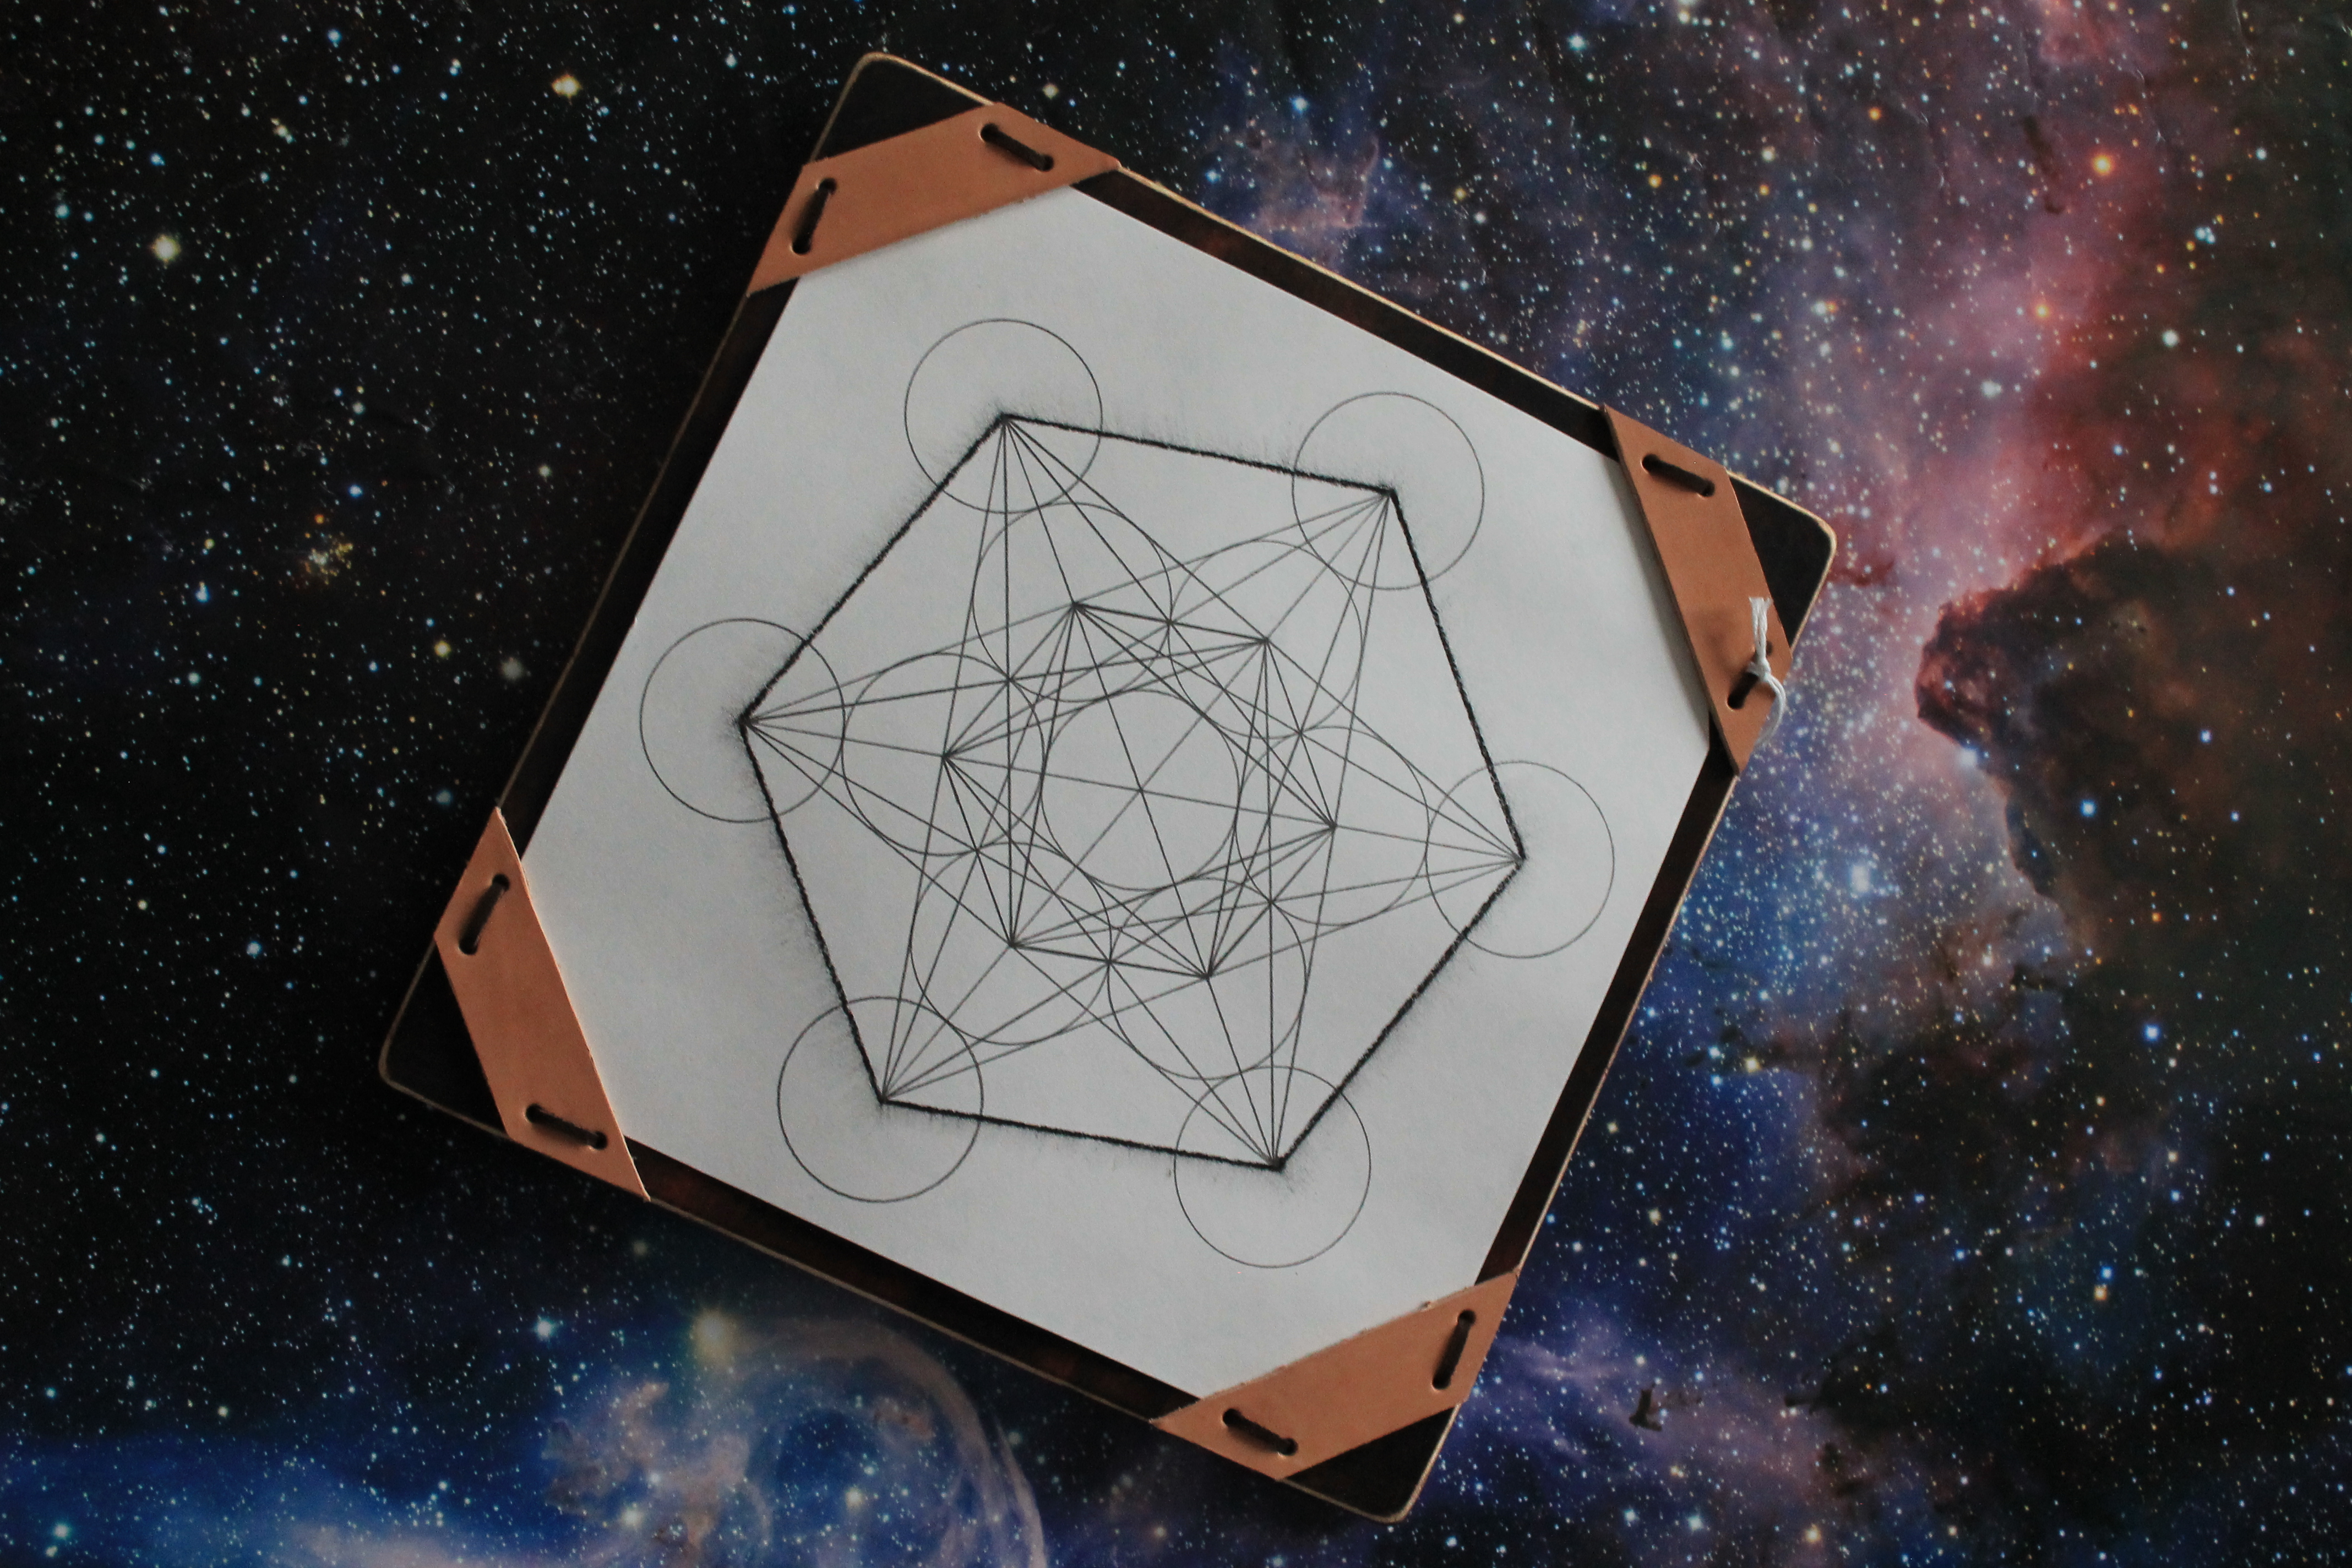 Bob's hand drawn metatron's cube, which contains all five platonic solids.